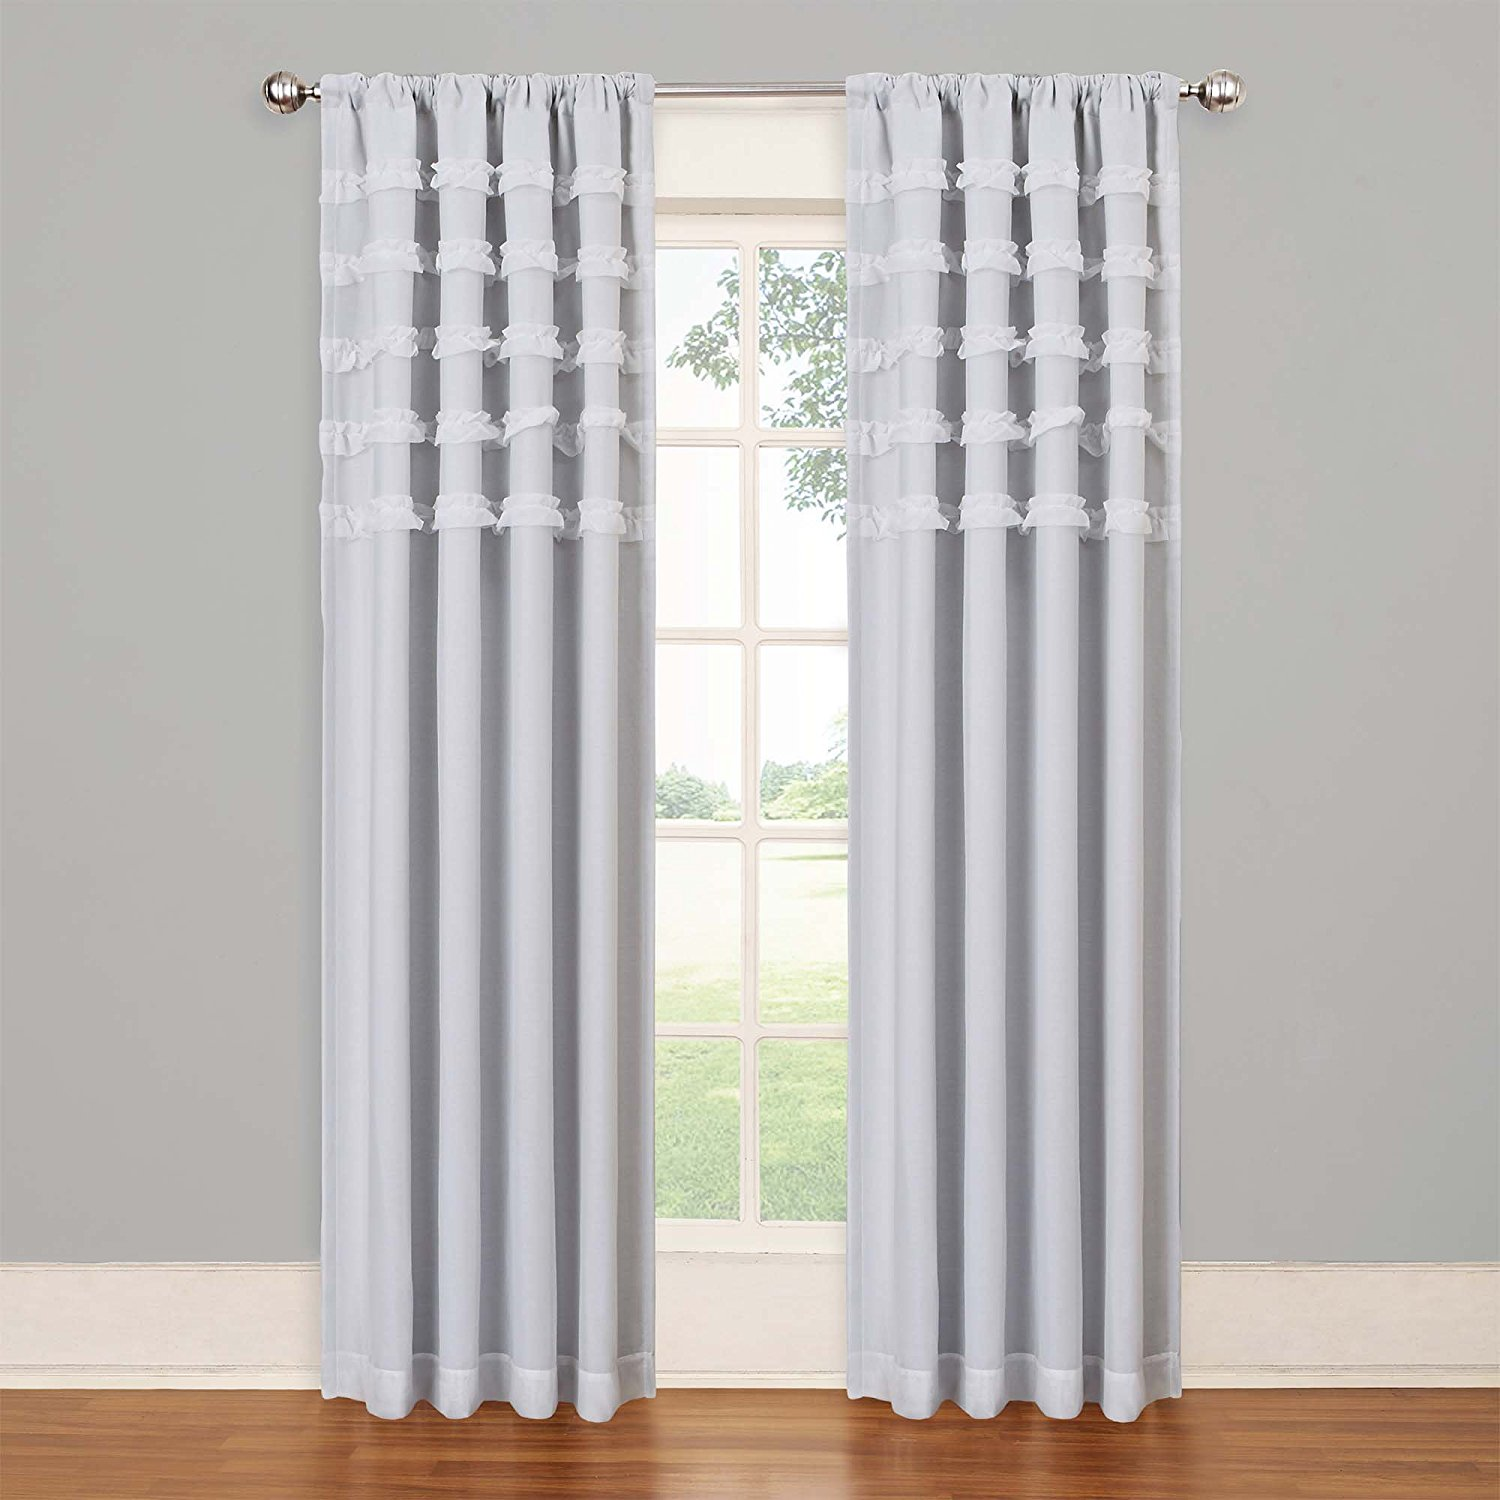 Blackout Curtains Childrens Bedroom | Ruffle Blackout Curtains | Childrens Blackout Curtains